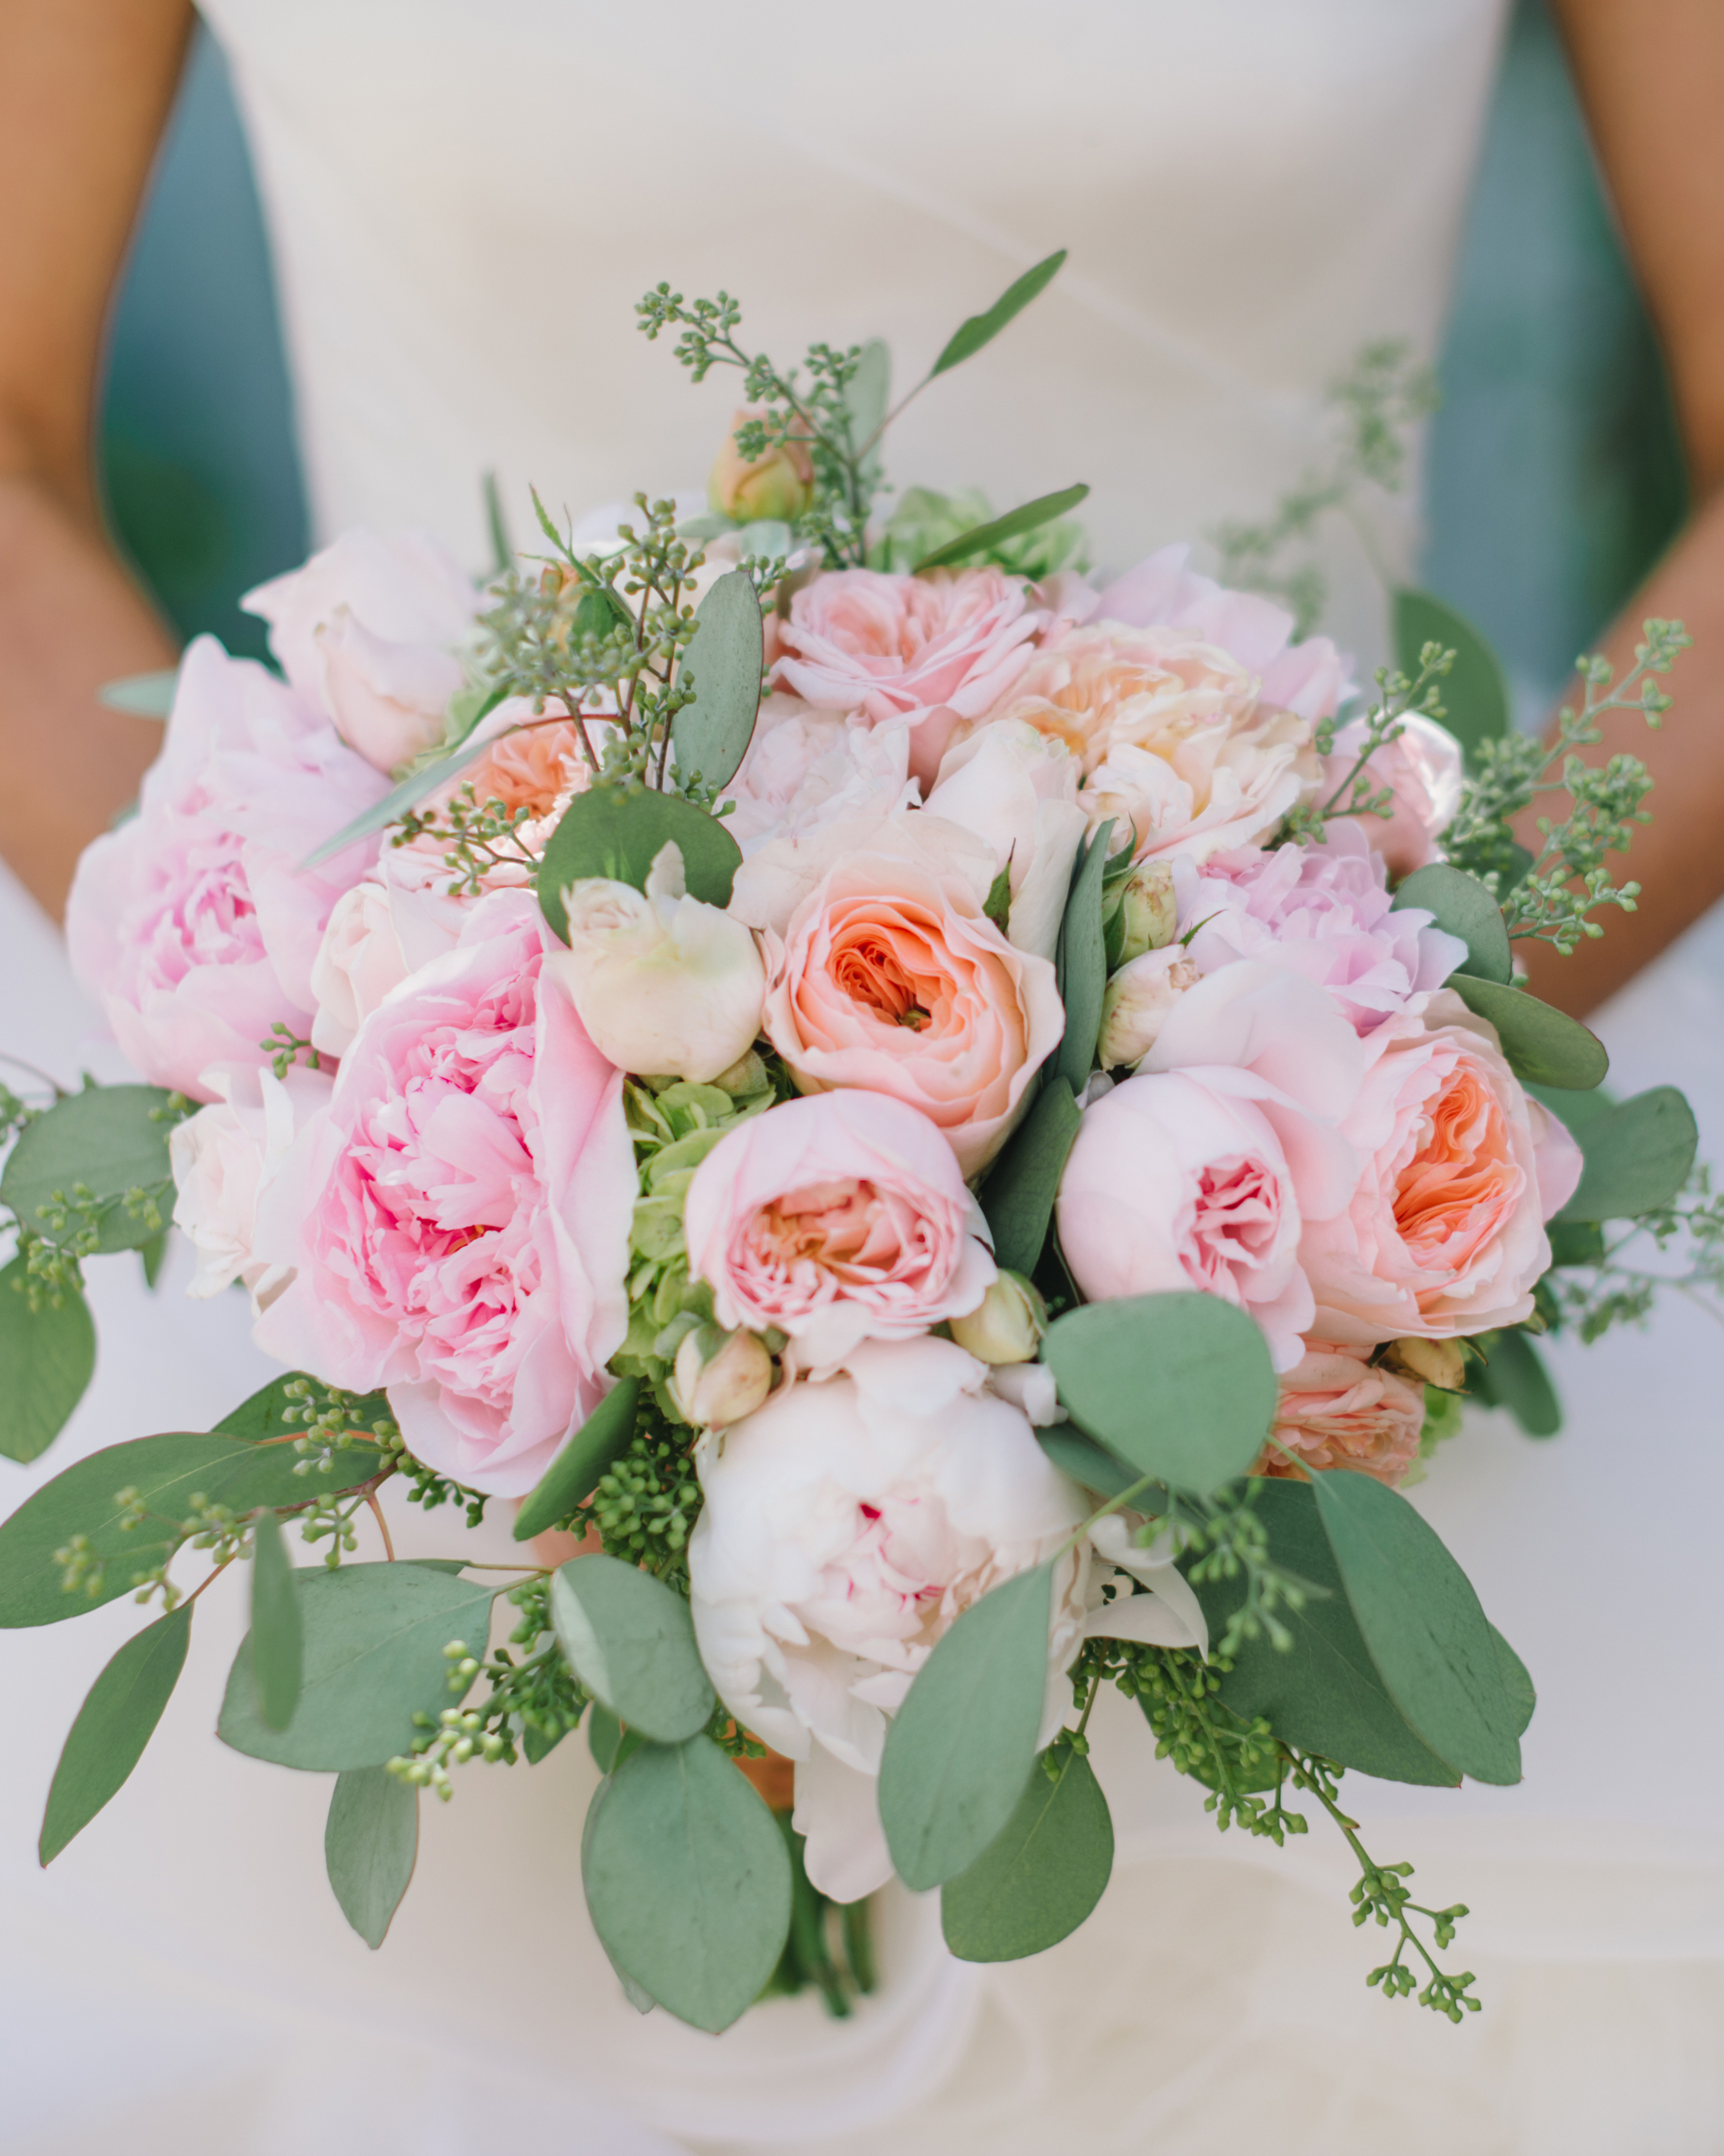 Florists Say These Are the Blooms to Avoid Using in Your Spring Wedding Bouquet